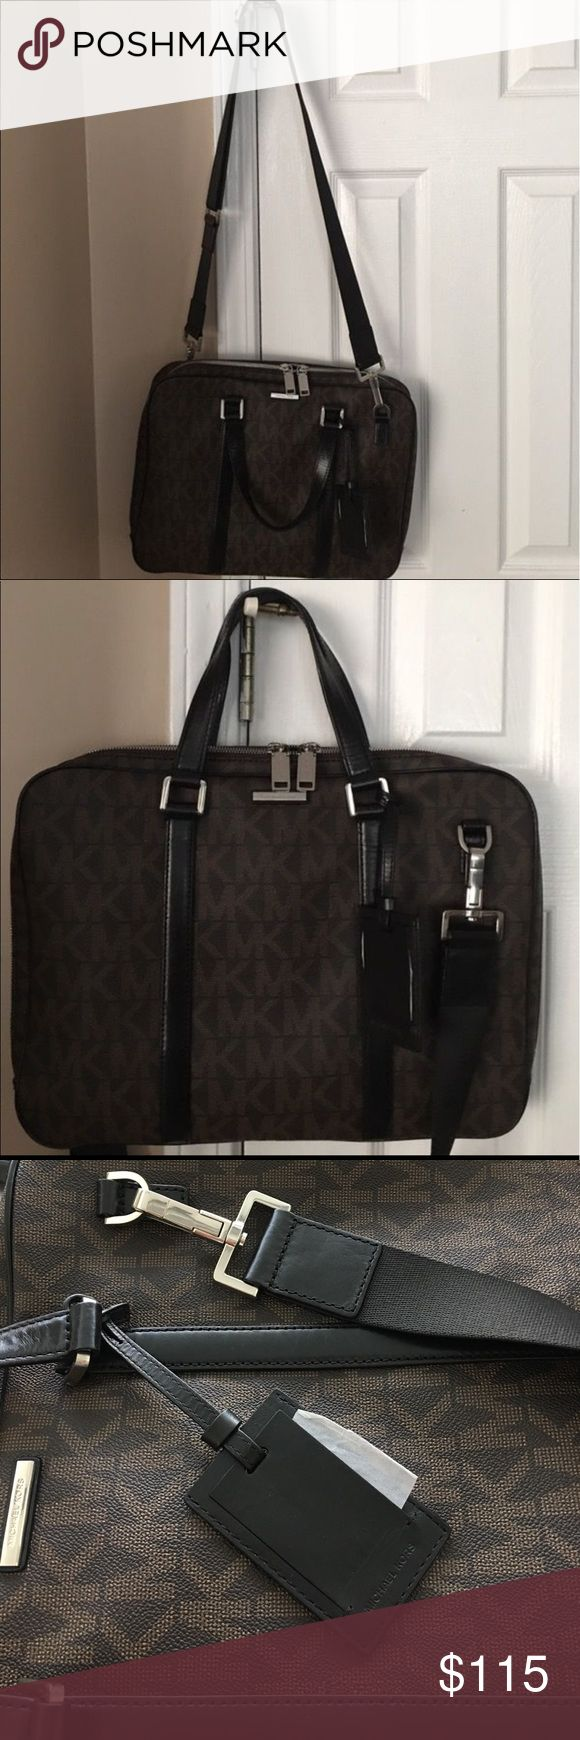 """Black Friday deal Authentic M Kors 💻 Bag 💼 16""""W X 12""""L leather laptop.  No trades price is firm Michael Kors Bags"""